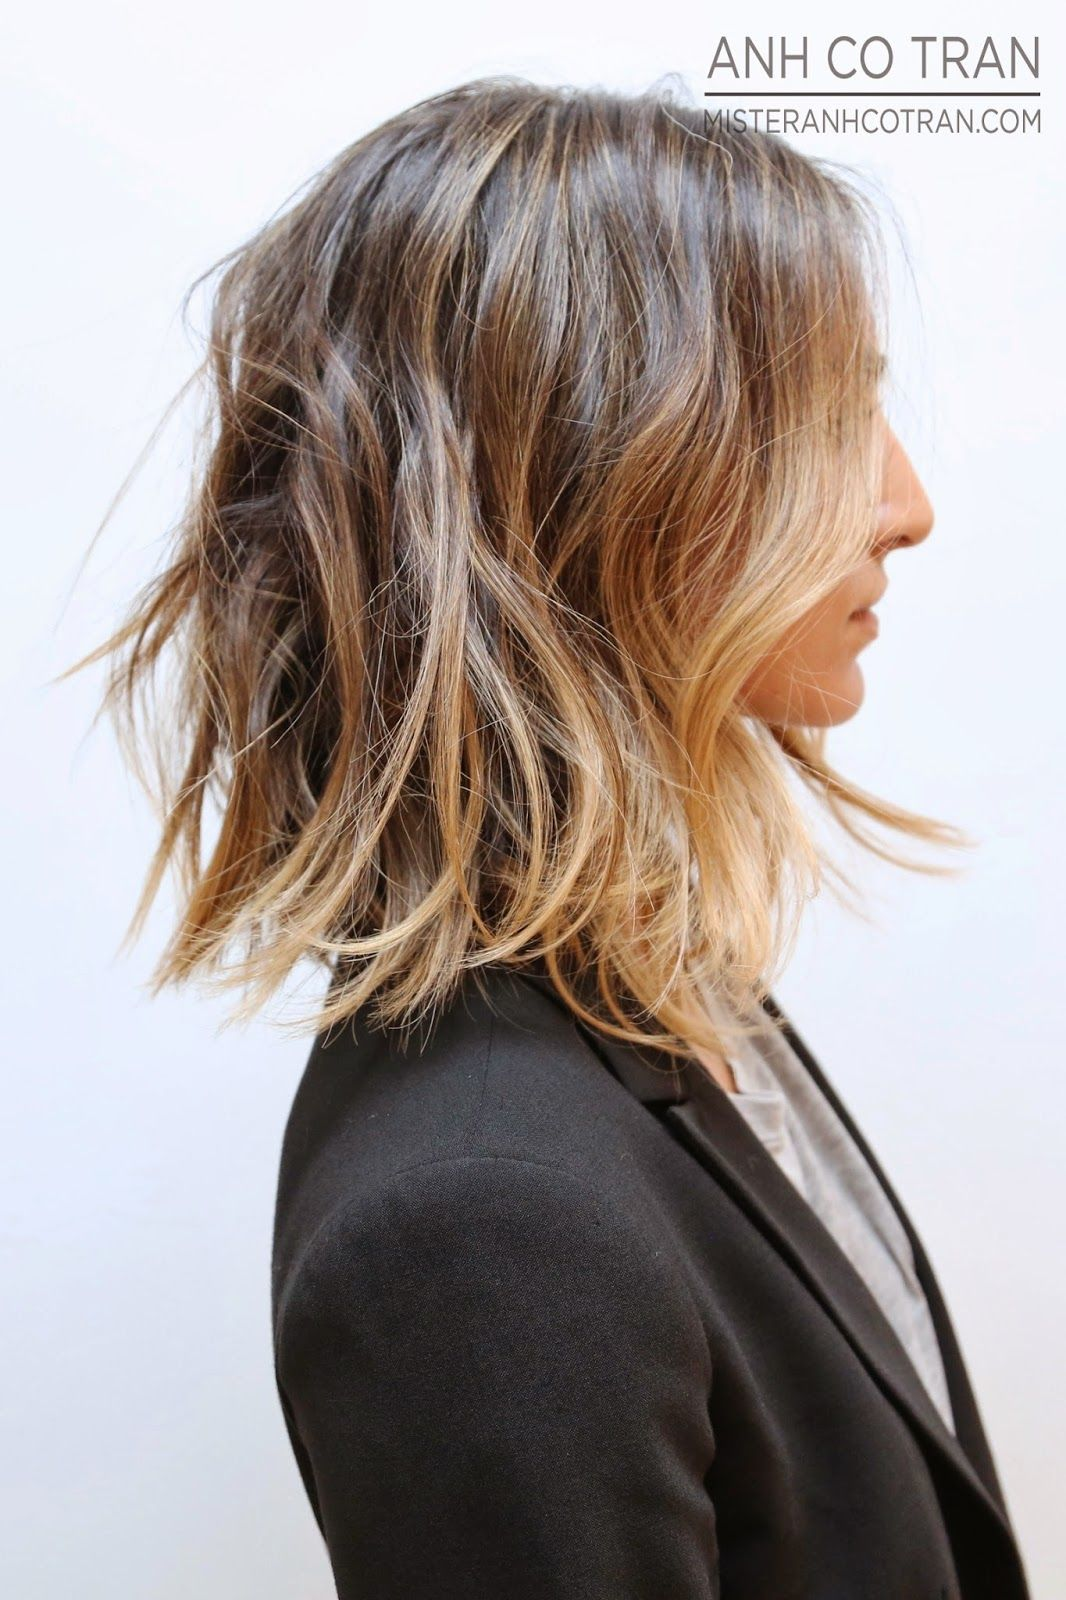 La become gorgeous from all angles at ramireztran salon in beverly